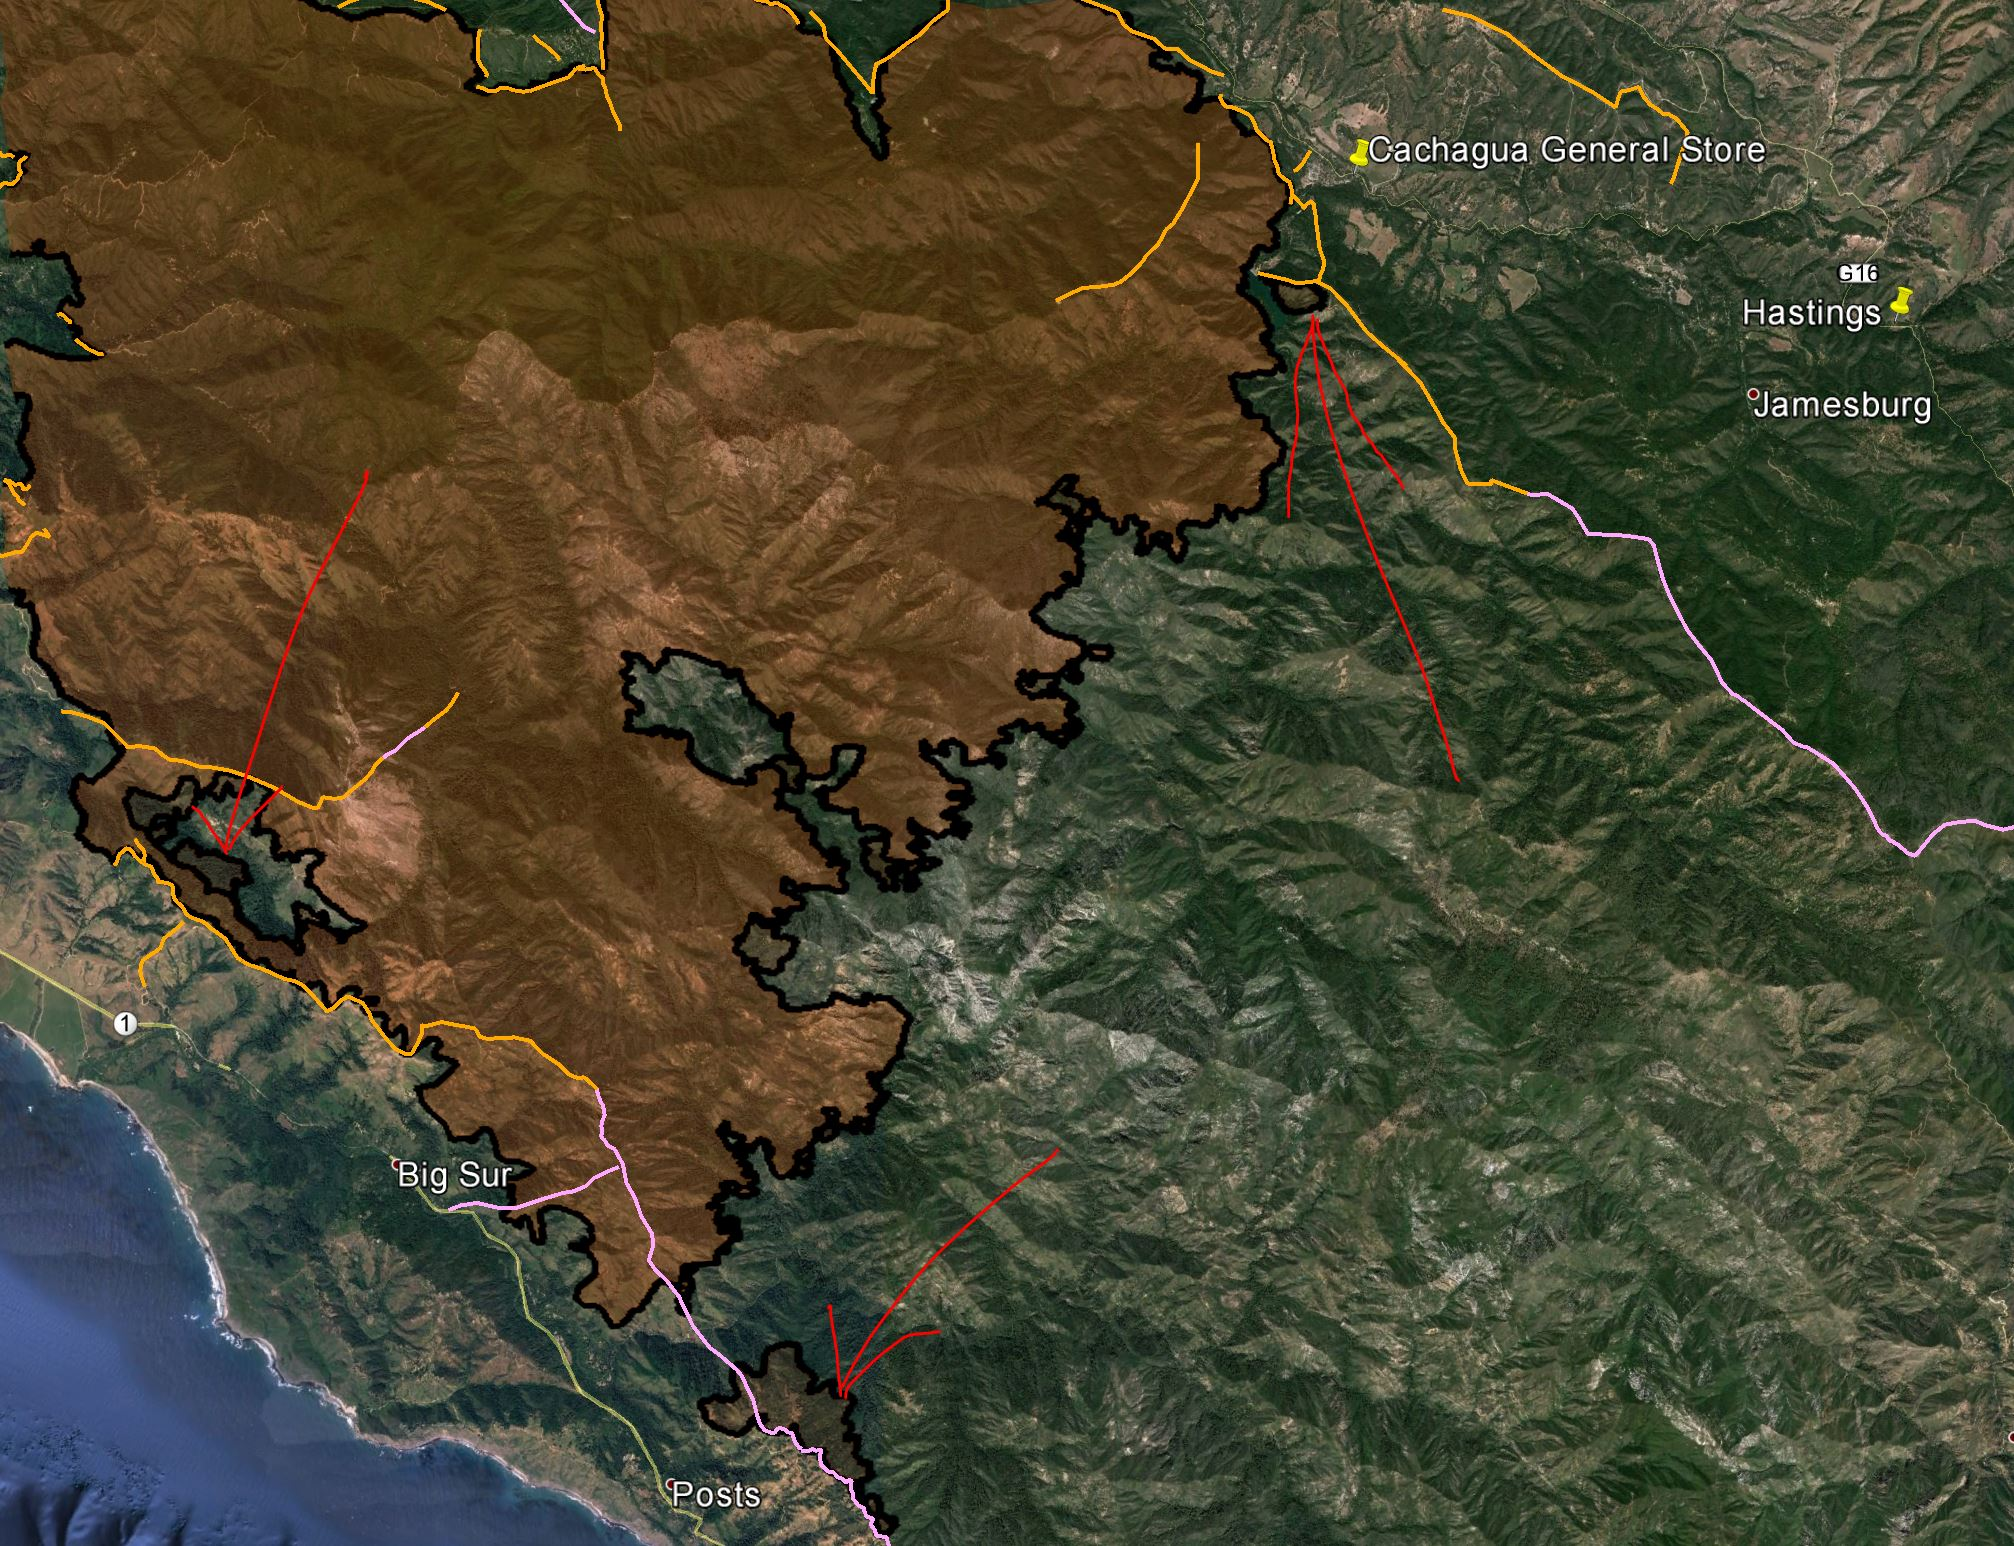 Soberanes Fire aerial/MODIS/VIIRS data — 0630 8/13